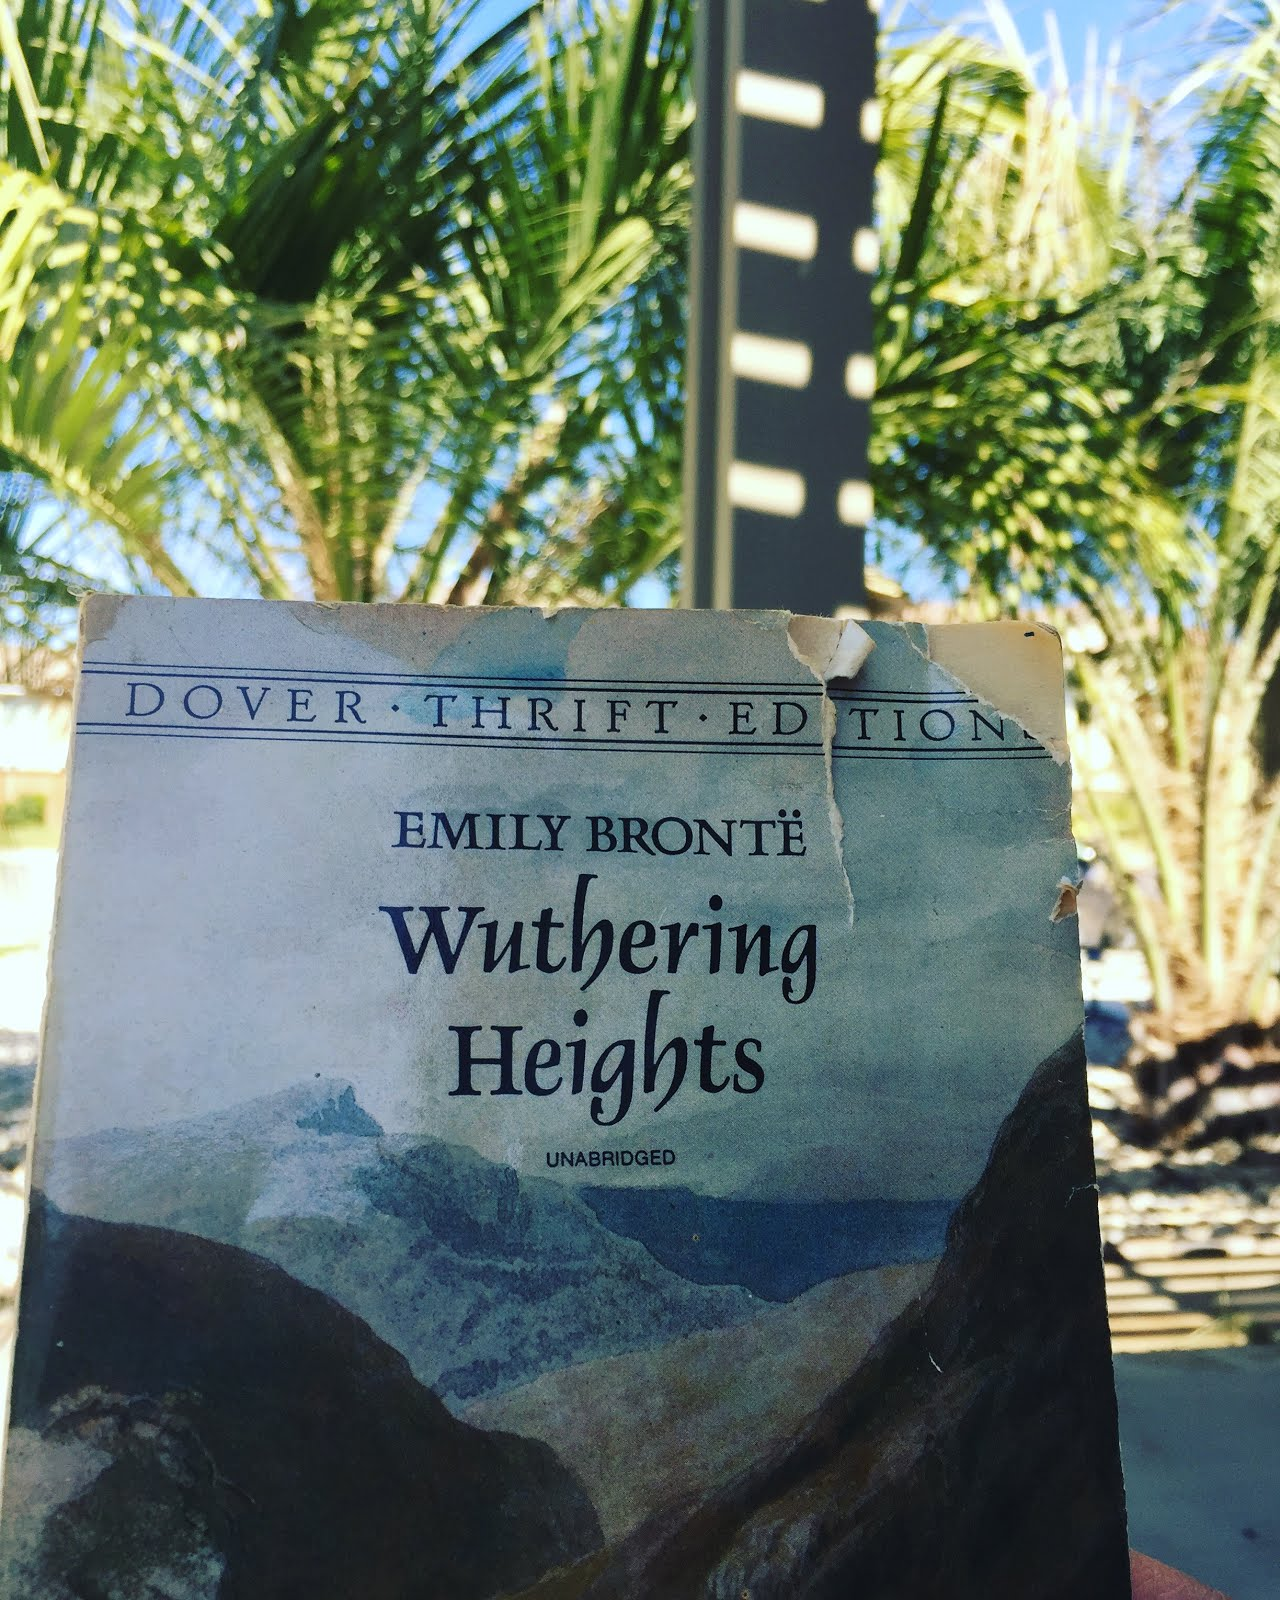 an analysis of wuthering heights by Analysis of major characters heathcliff - an orphan brought to live at wuthering heights by mr earnshaw, heathcliff falls into an intense, unbreakable love with mr earnshaw's daughter.